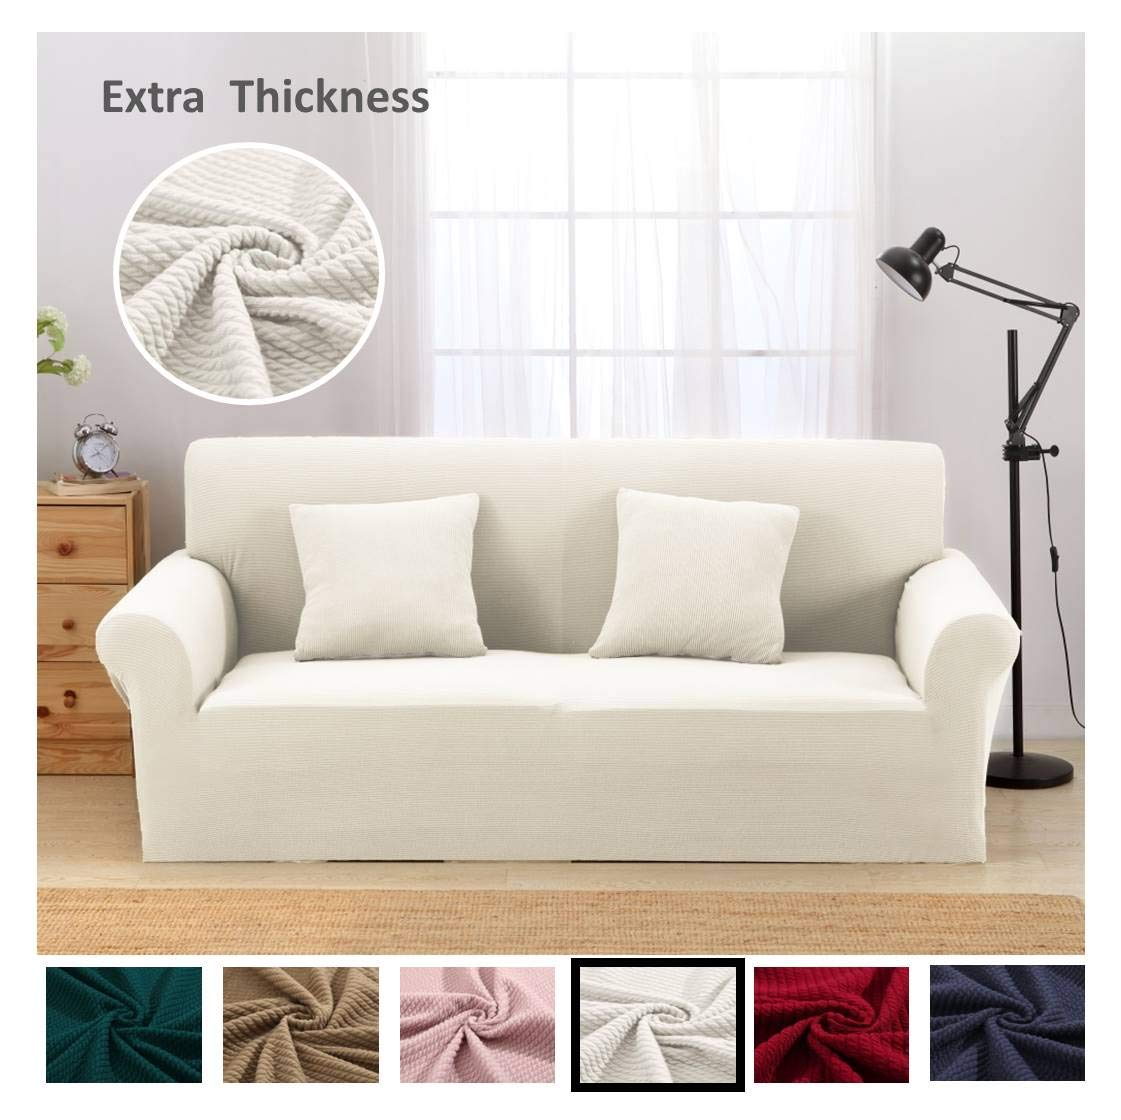 Magnificent Argstar Premium Knit Slip Cover For Sofa Couch Spandex Stretch 3 Seater Slipcover Cream White Pdpeps Interior Chair Design Pdpepsorg